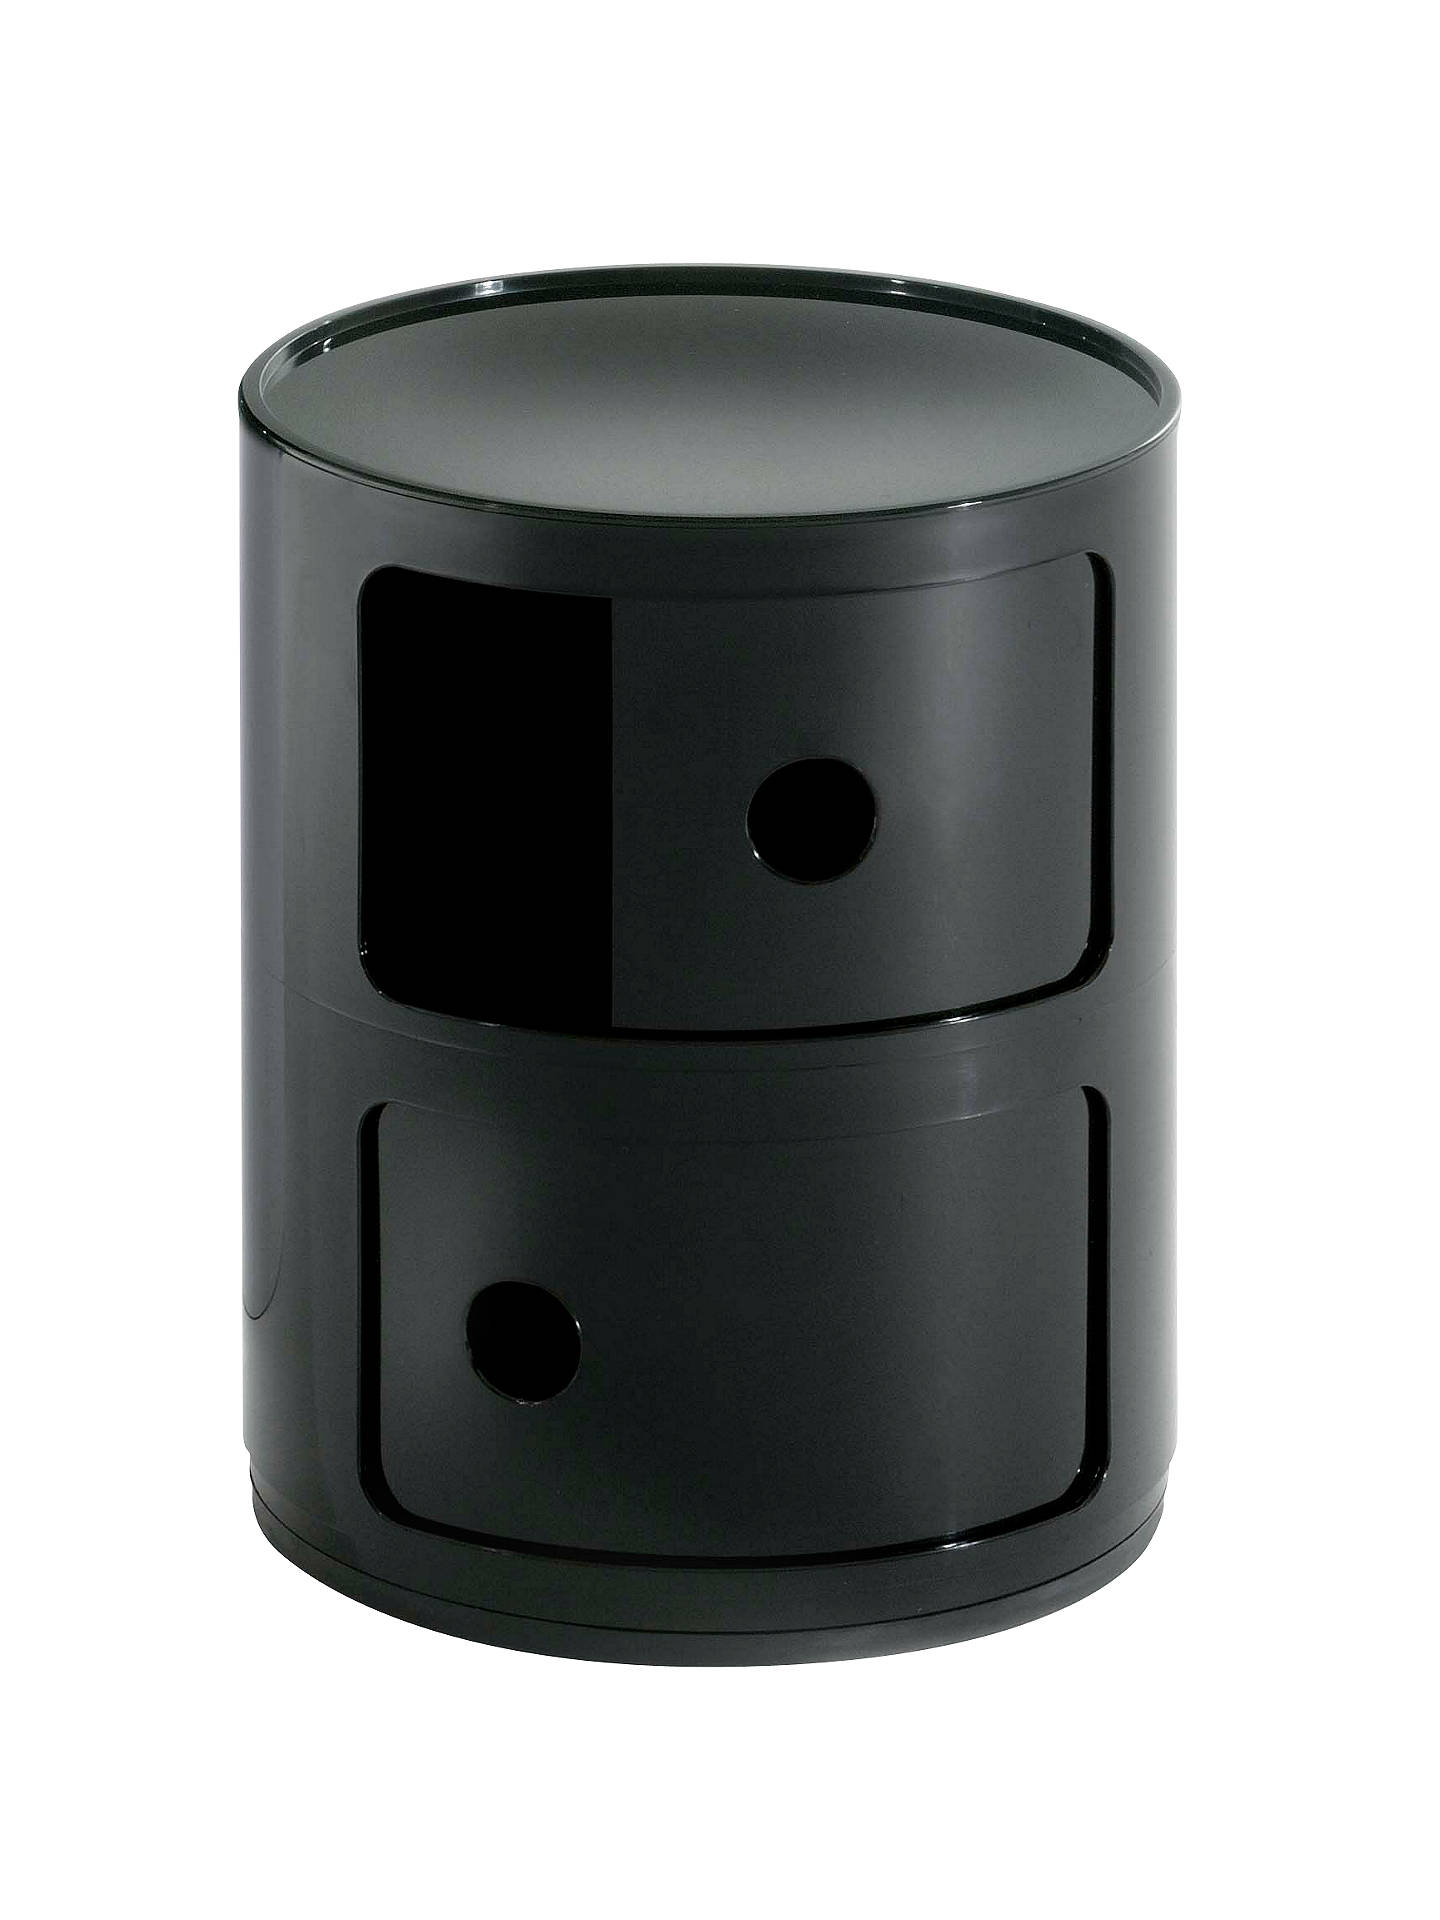 Buy Kartell Componibili Circular Storage Unit, 2 Tier, Black Online at johnlewis.com